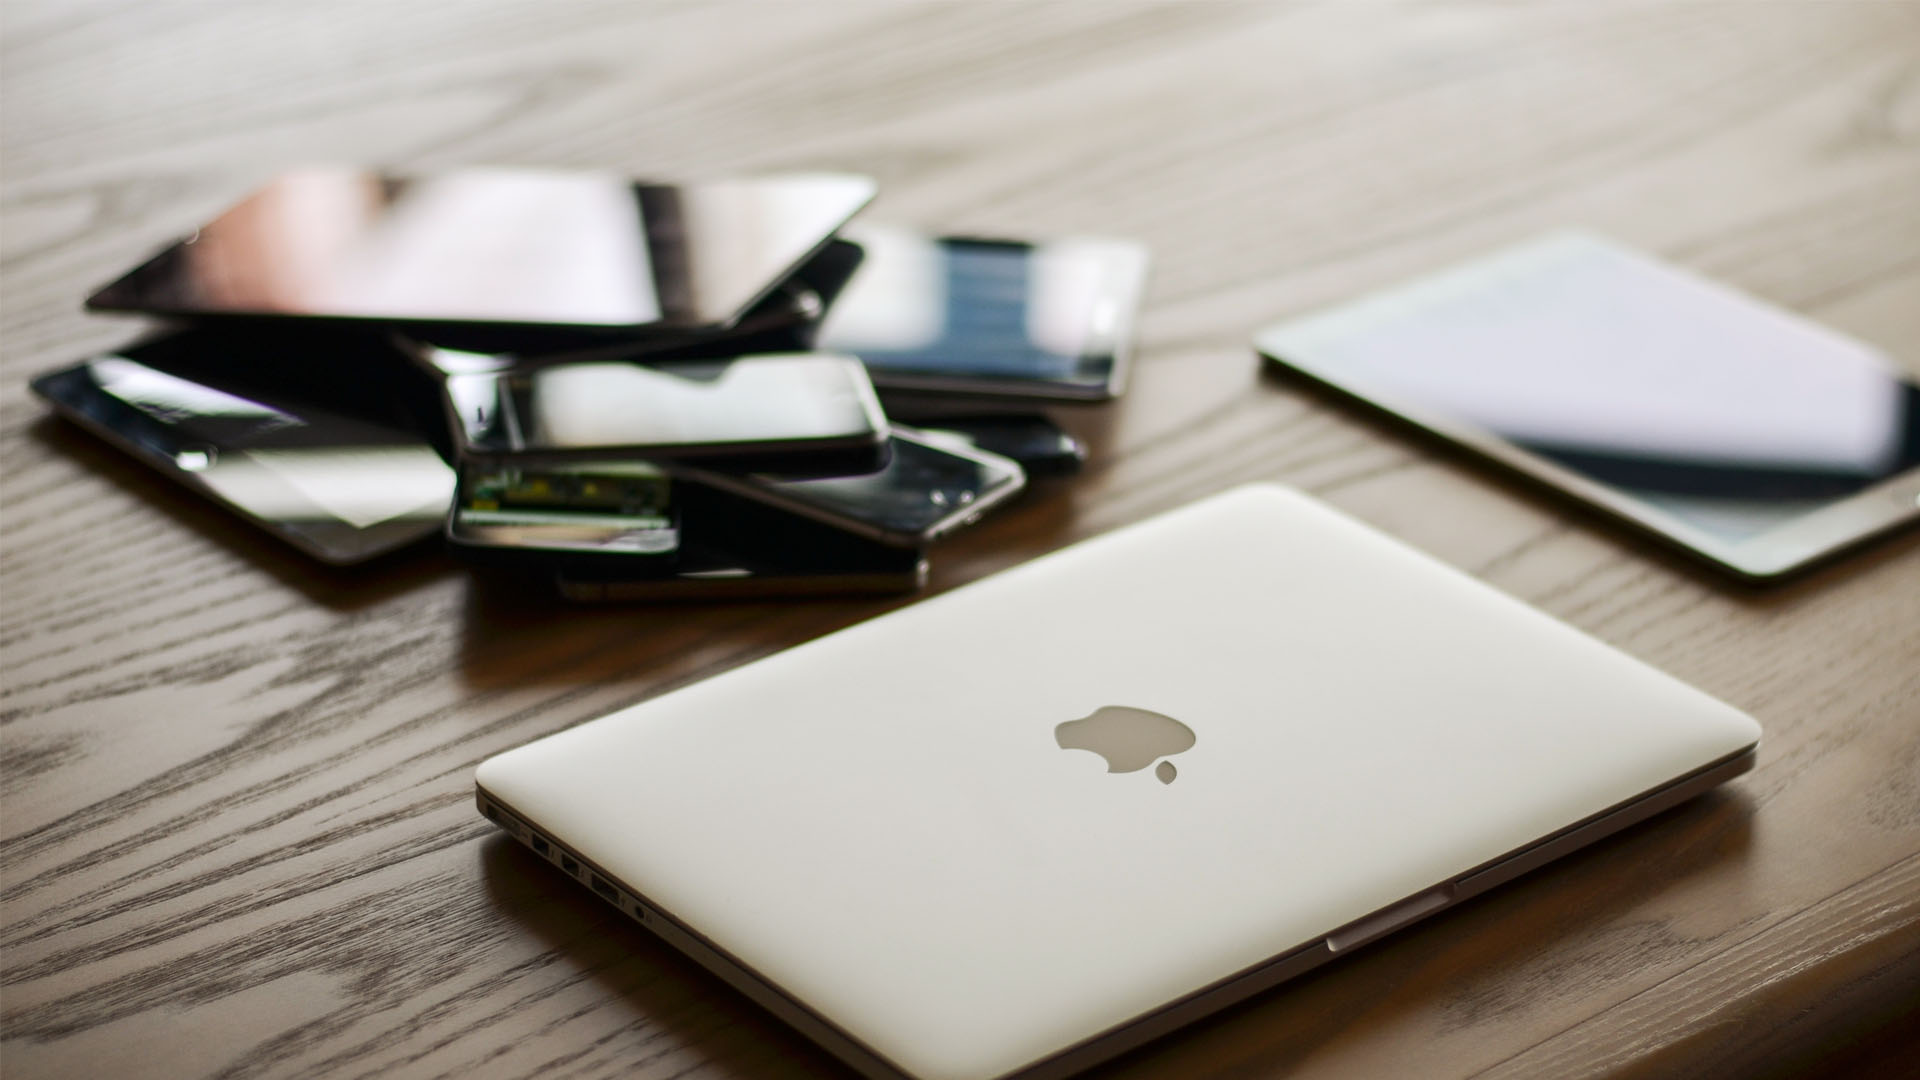 One-third of families have bickered over device updates at home